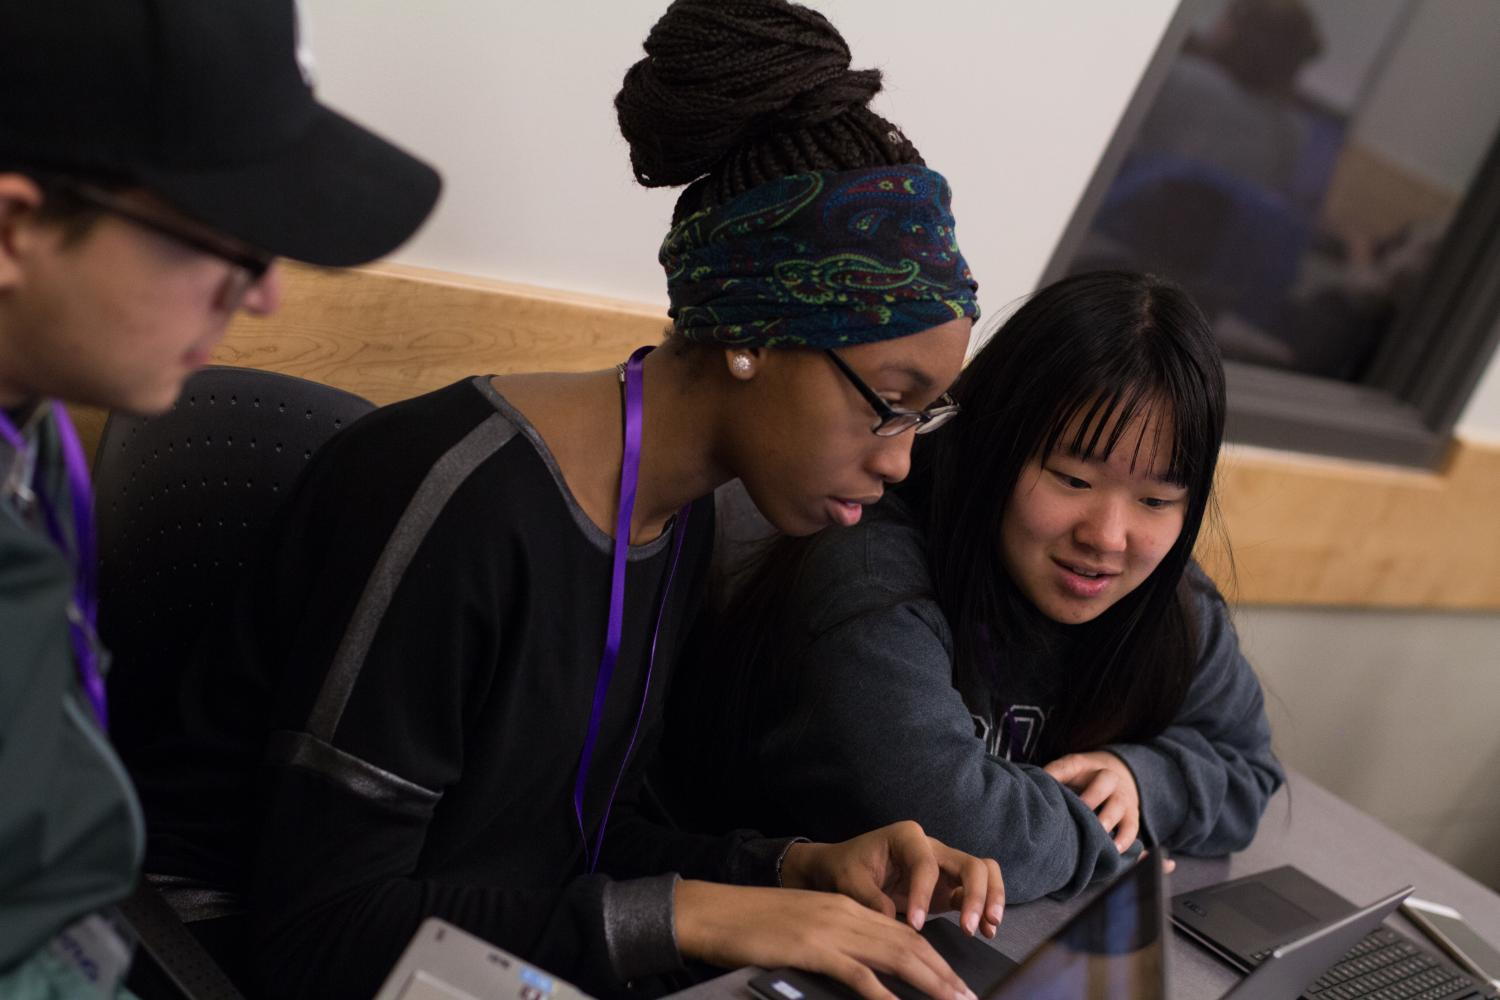 Women coding at the T9 Hacks event